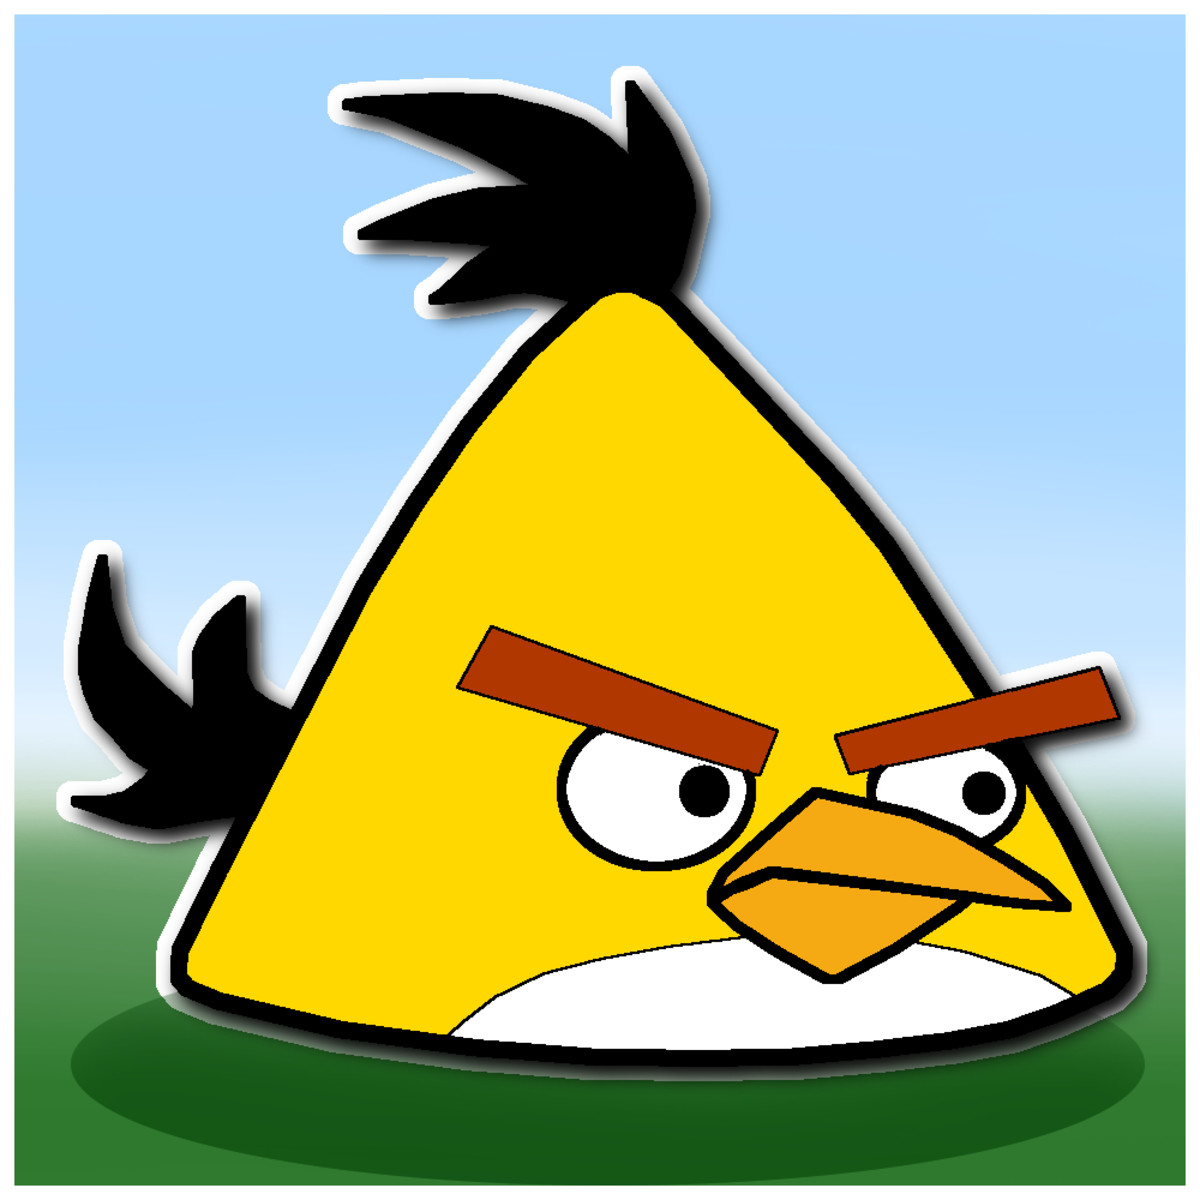 The finished Yellow Angry Bird to help you know what it looks like.